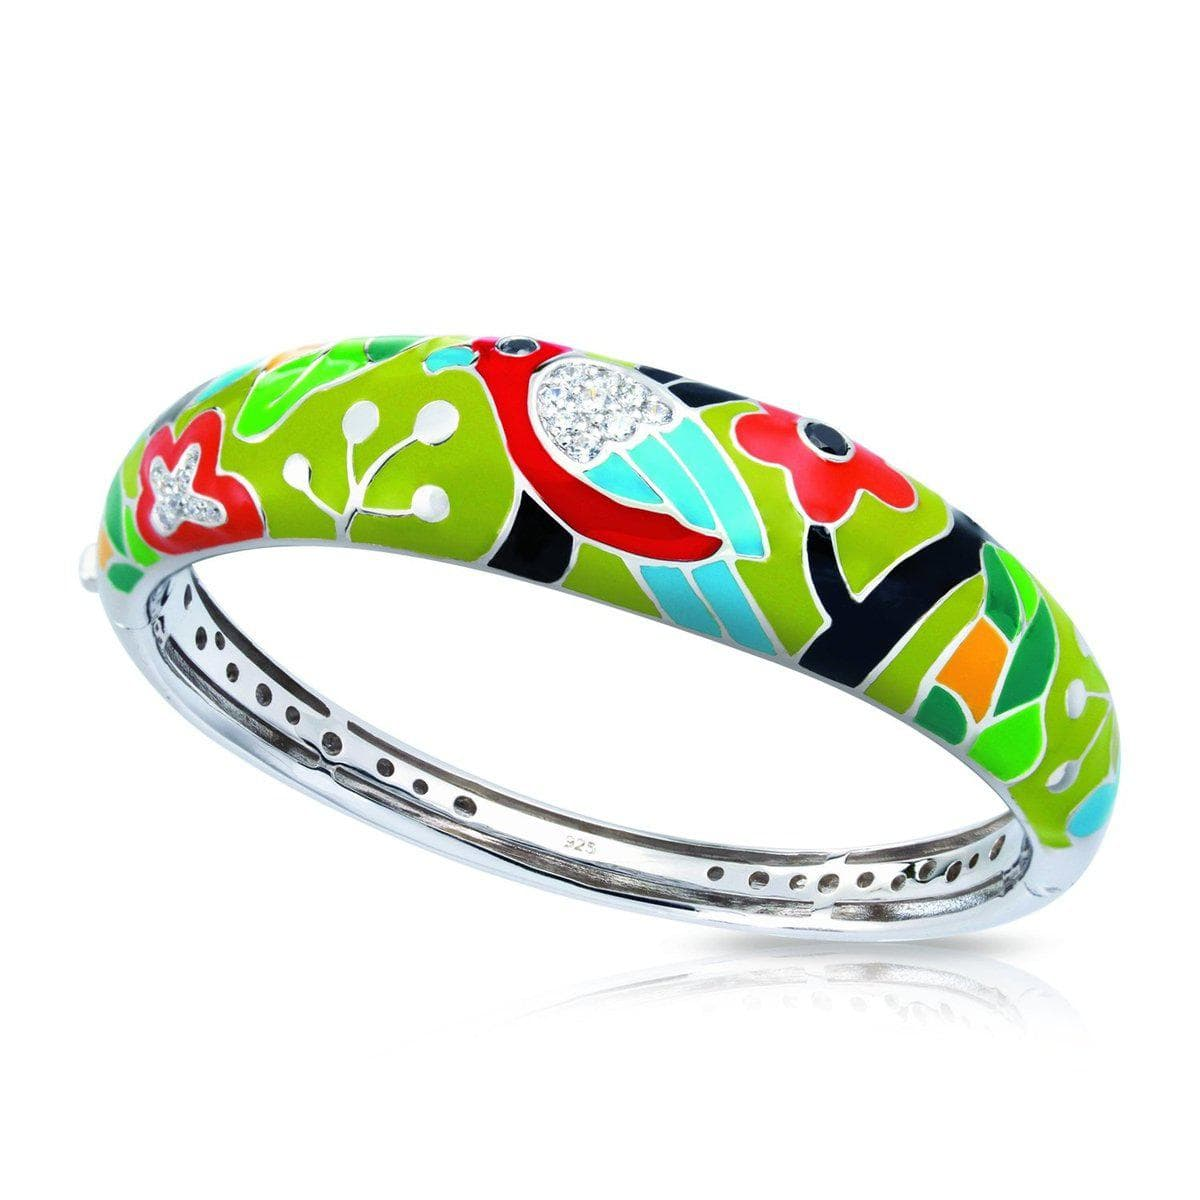 Perroquet Green Bangle-Belle Etoile-Renee Taylor Gallery